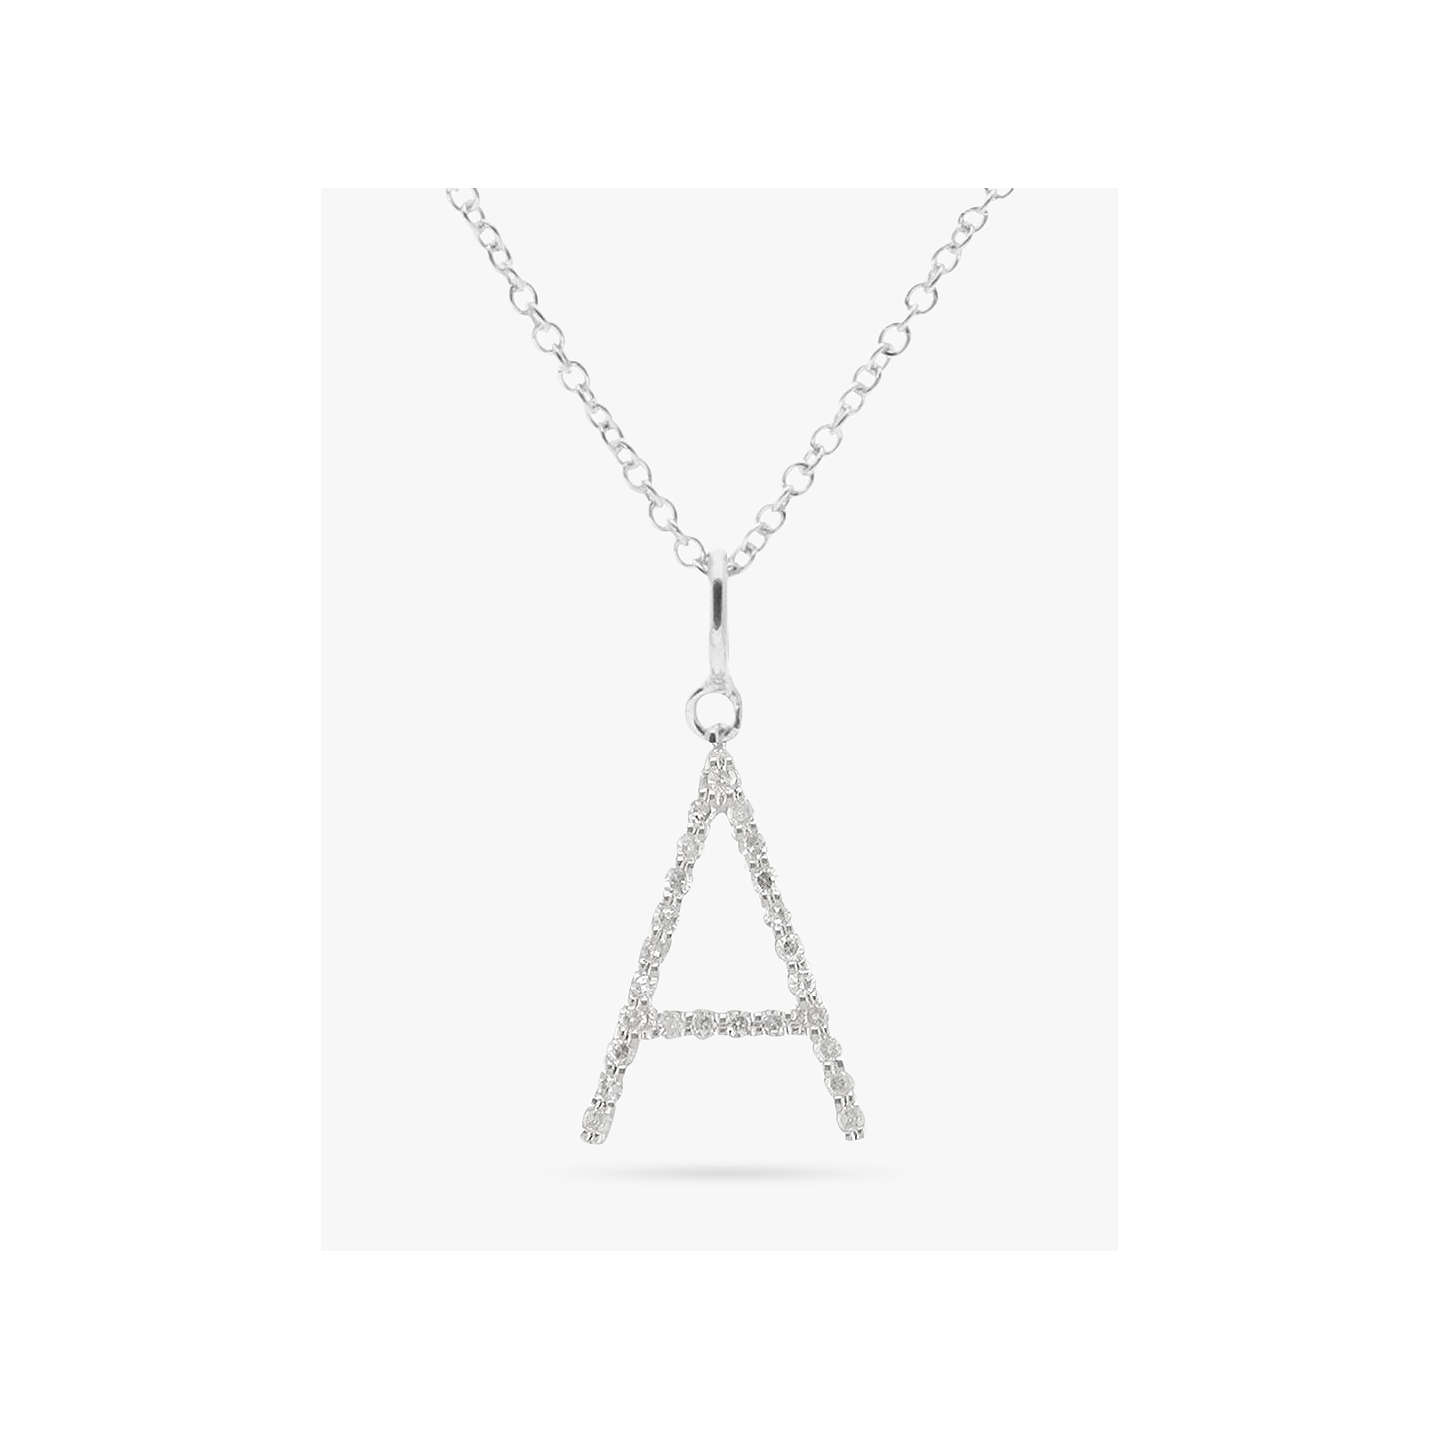 Ewa 9ct white gold diamond letter pendant at john lewis buyewa adams 9ct white gold diamond letter pendant a online at johnlewis mozeypictures Images